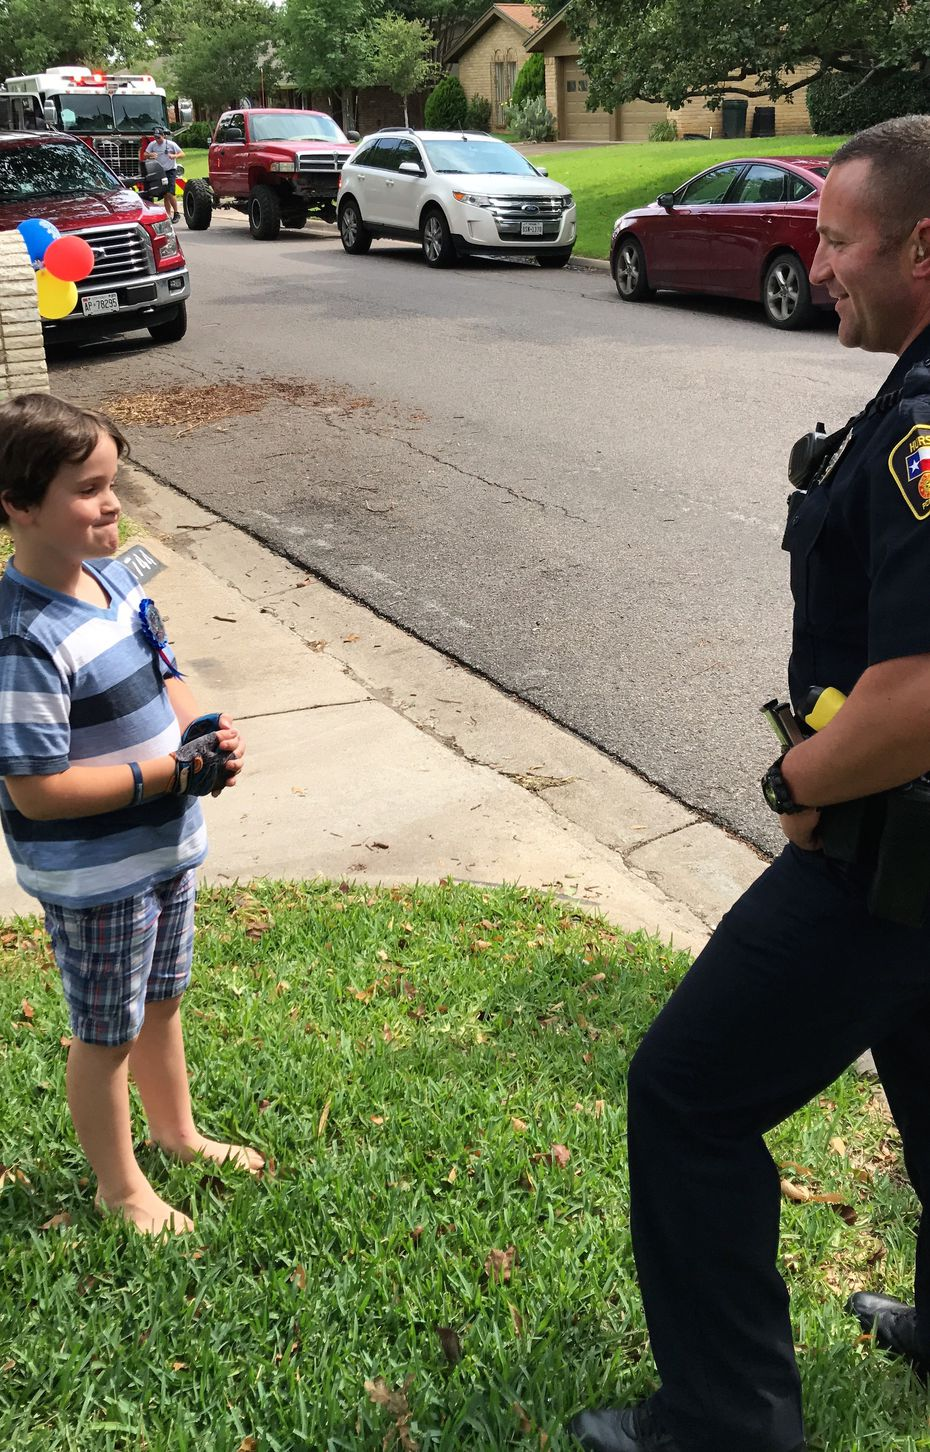 Graham Day, 8, talks with a Hurst police officer who celebrated his birthday with him.